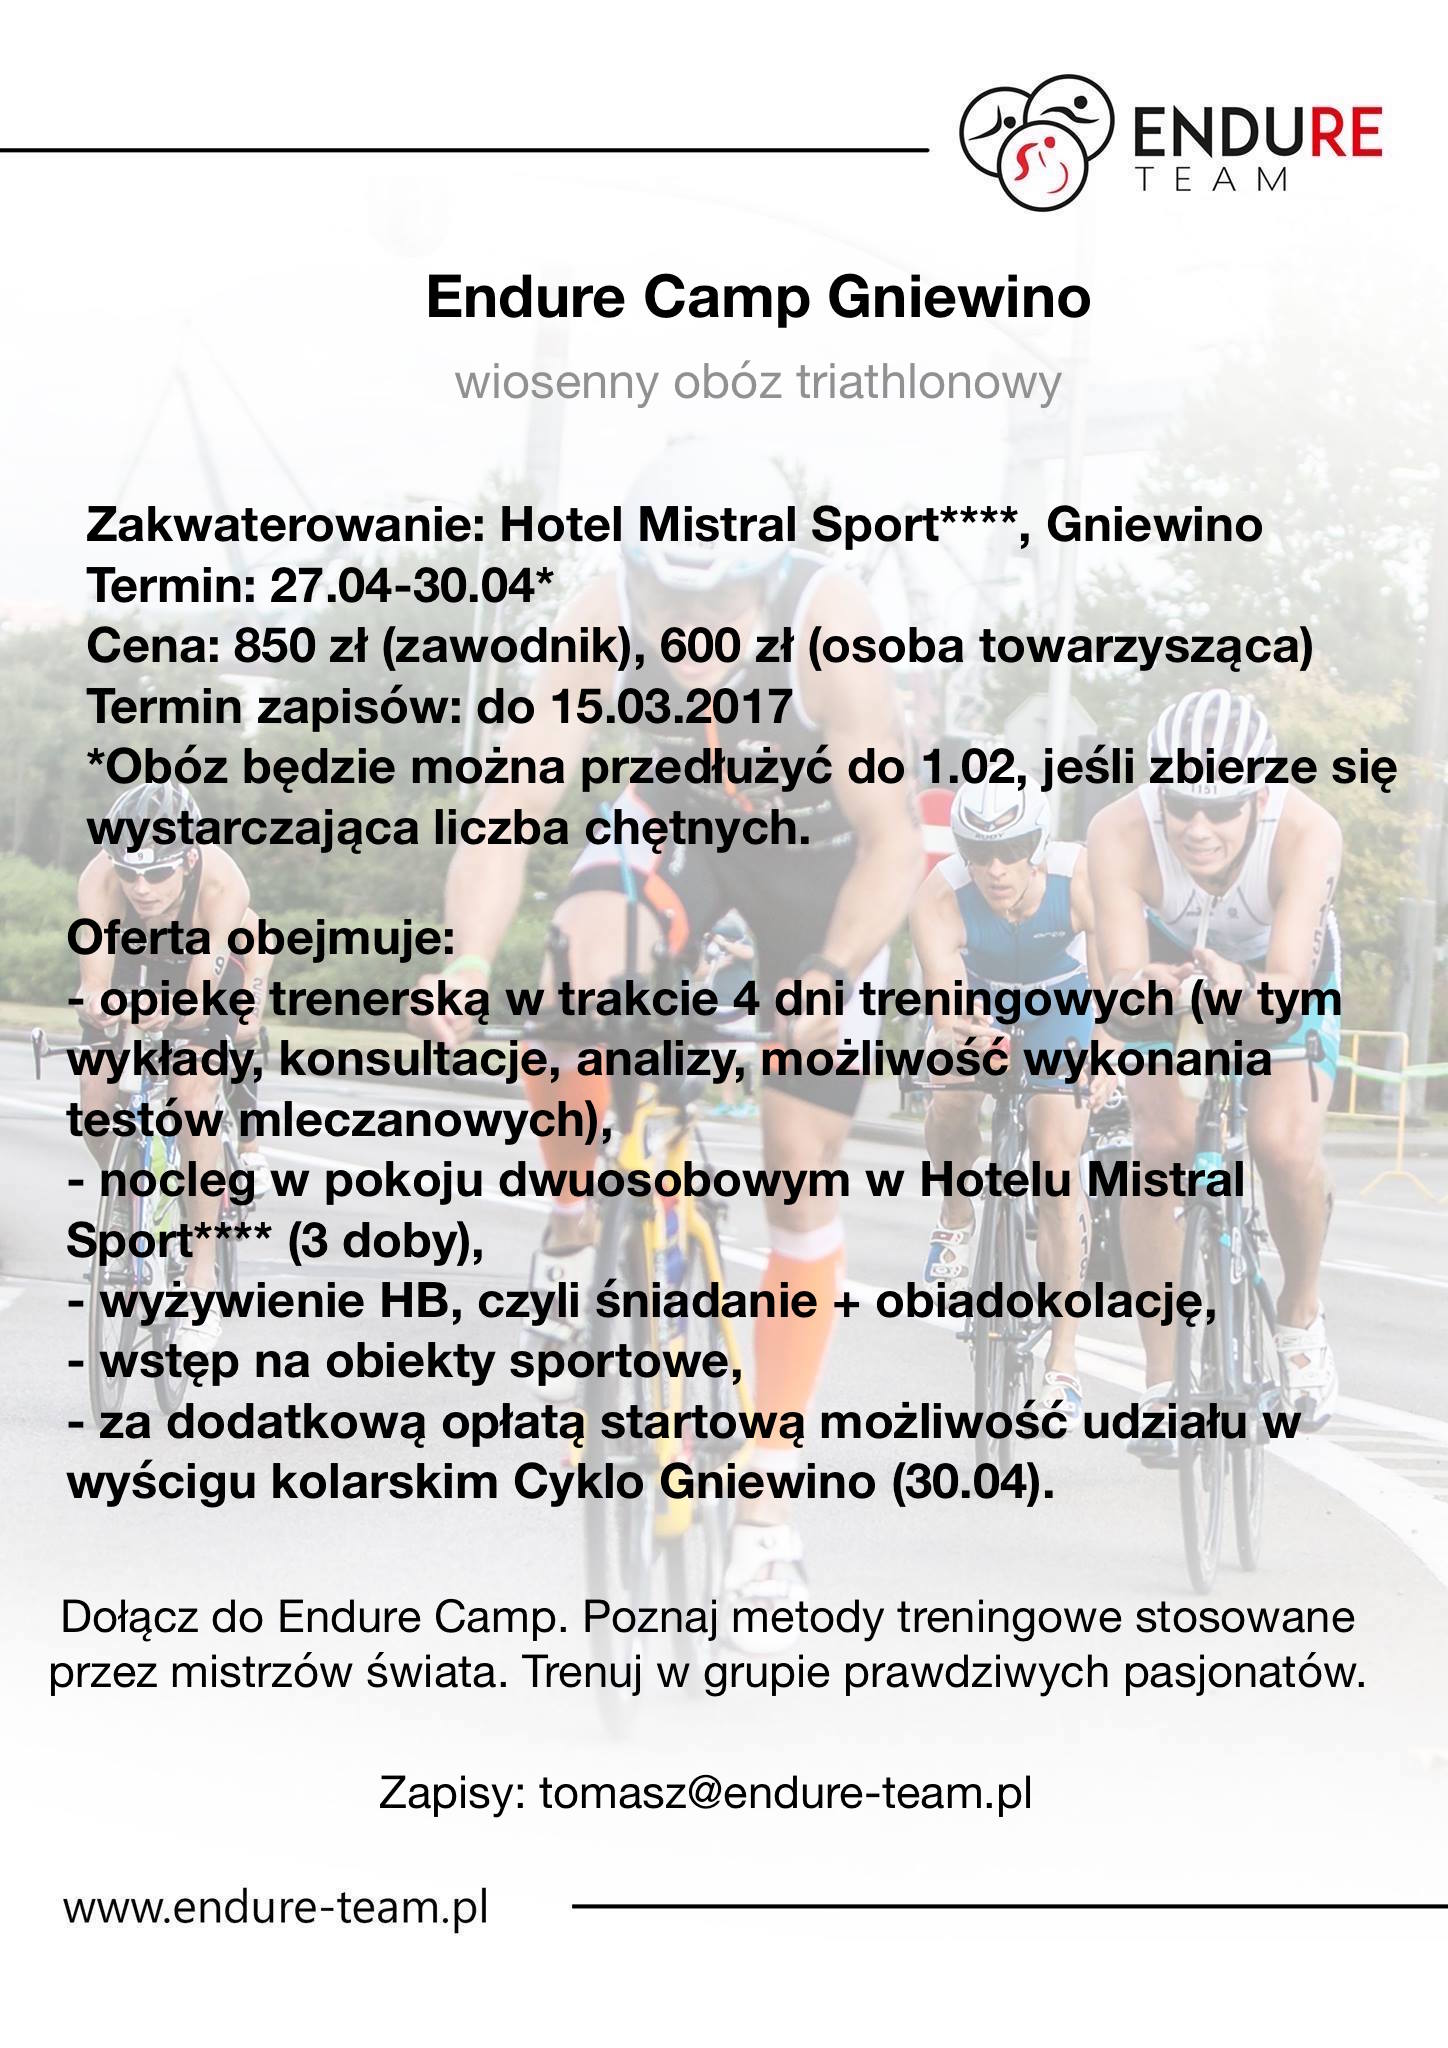 Endure Camp Gniewino - oferta